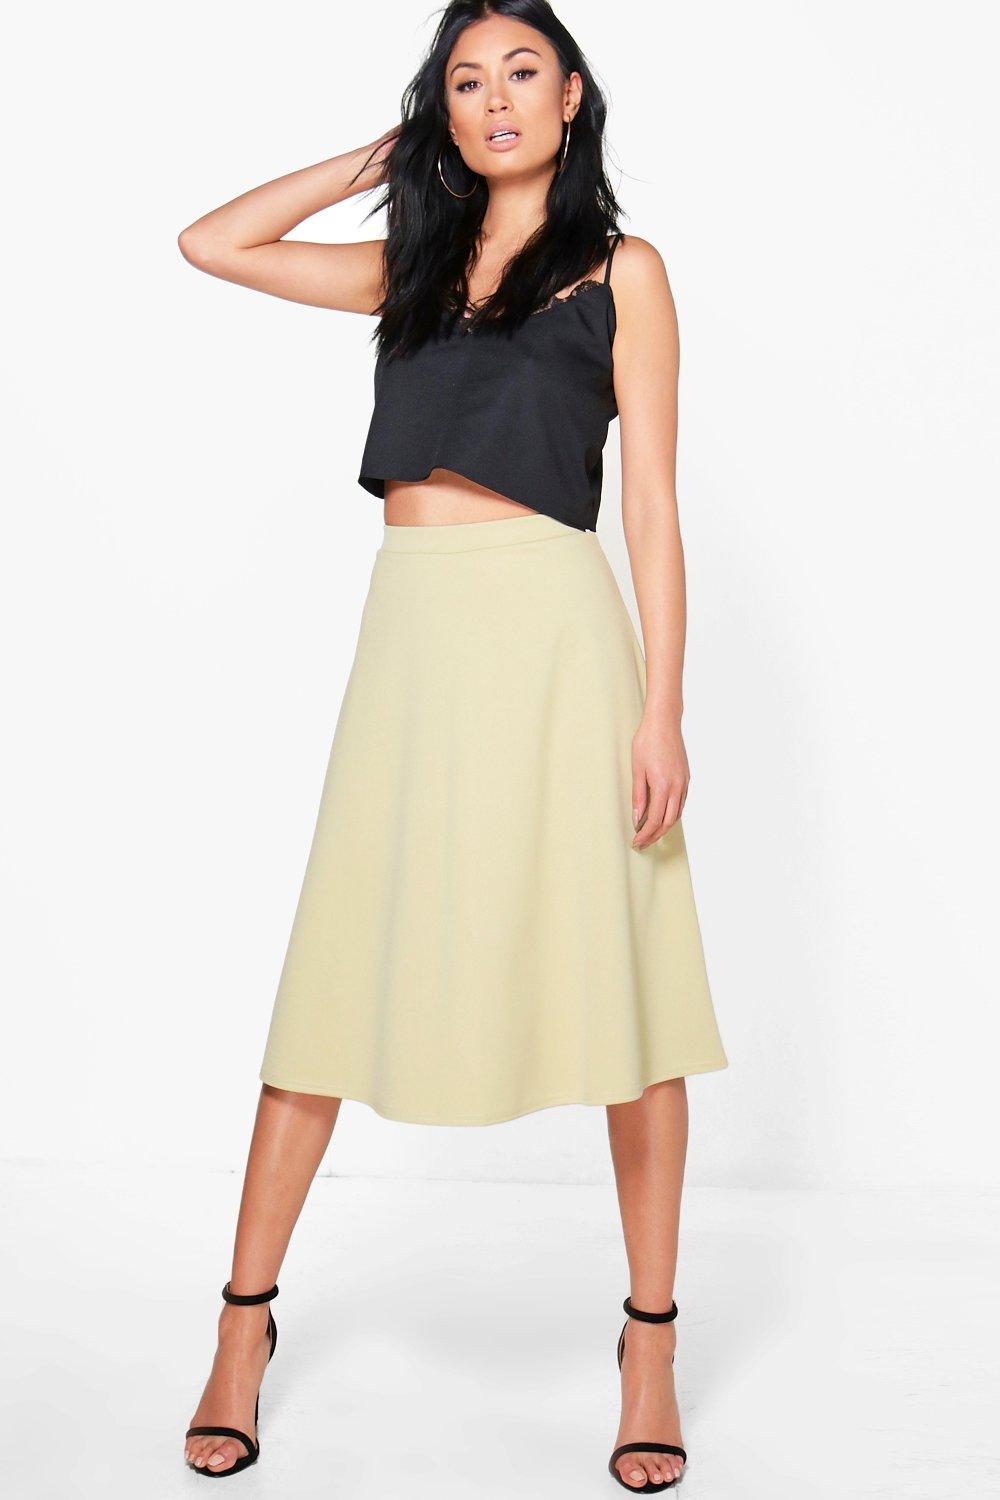 Arianna Plain Full Circle Midi Skirt at boohoo.com